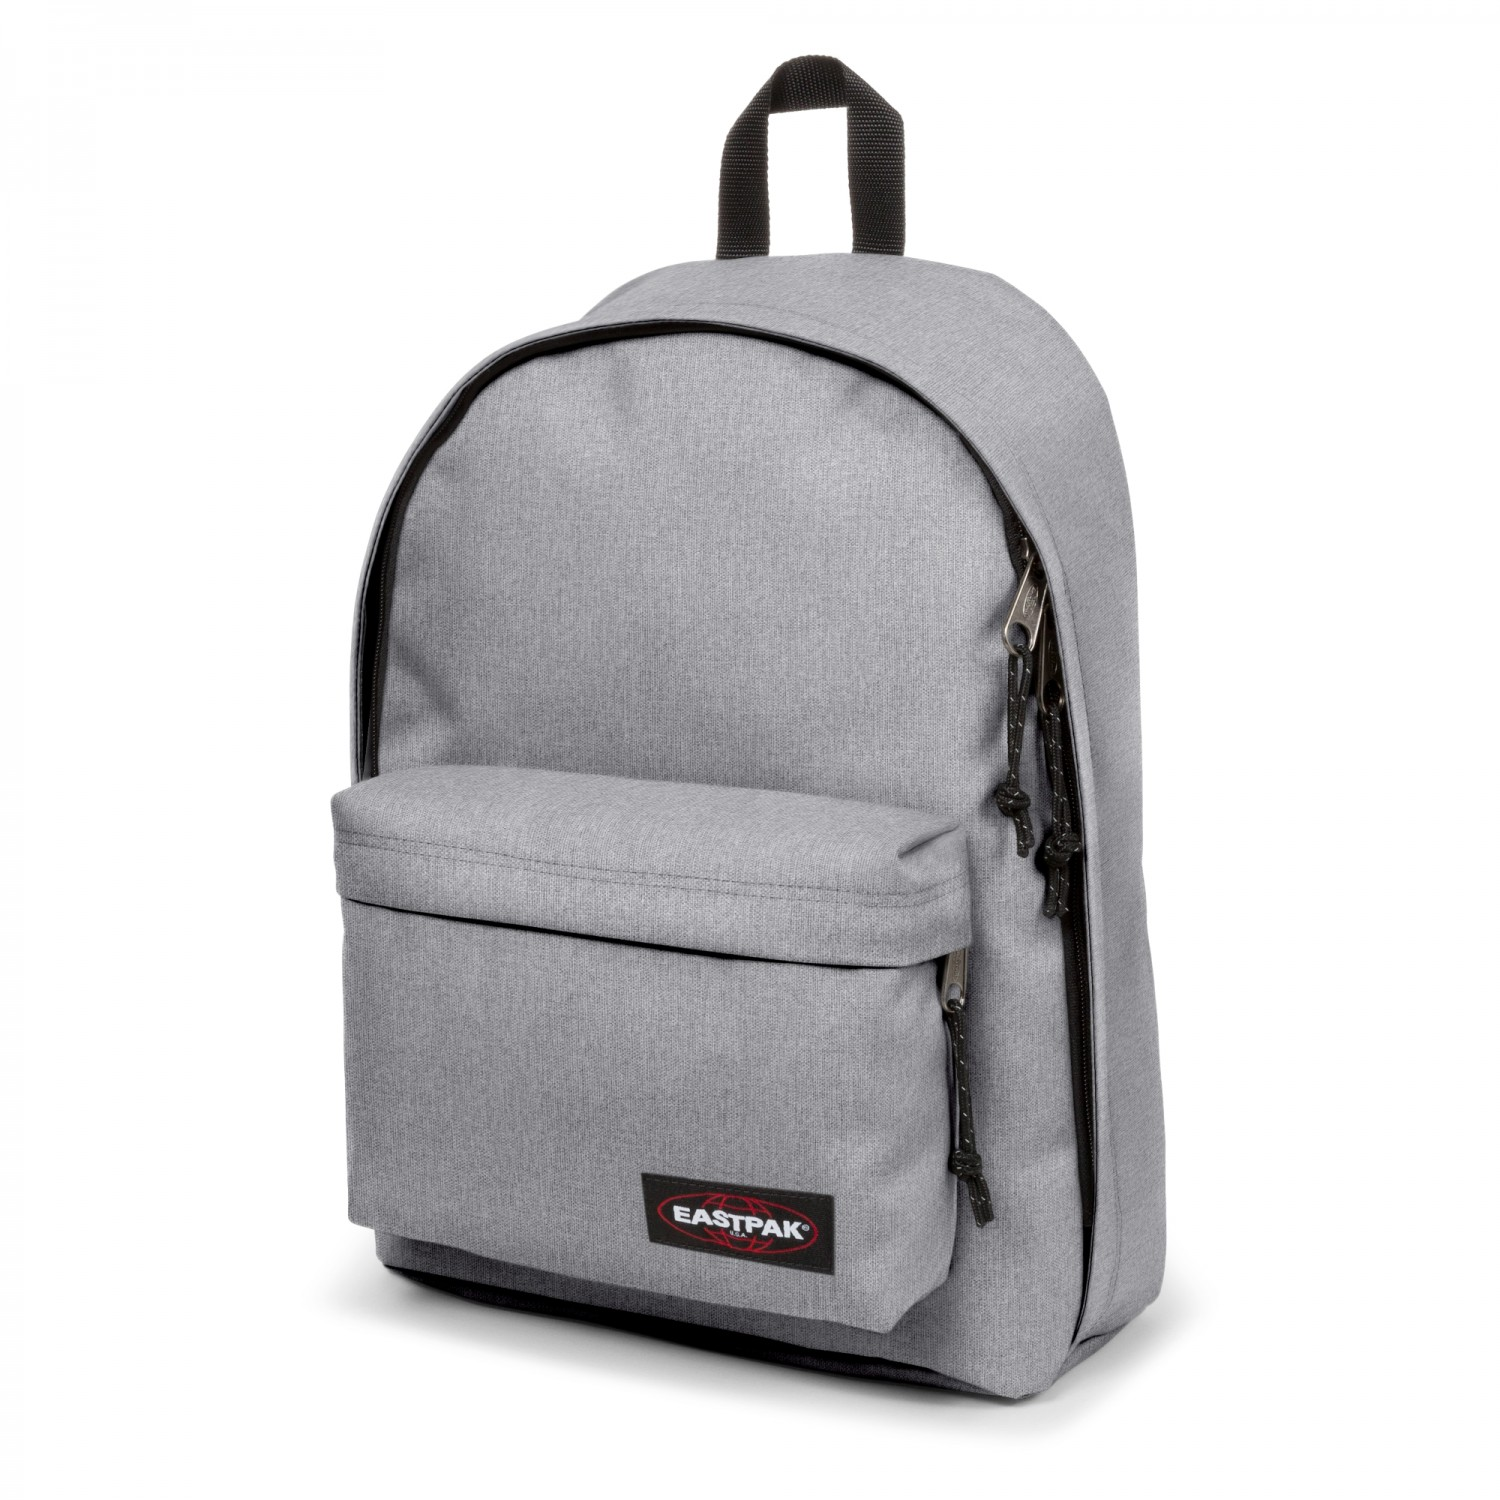 eastpak out of office ek767 rucksack 363 grau 27 liter. Black Bedroom Furniture Sets. Home Design Ideas